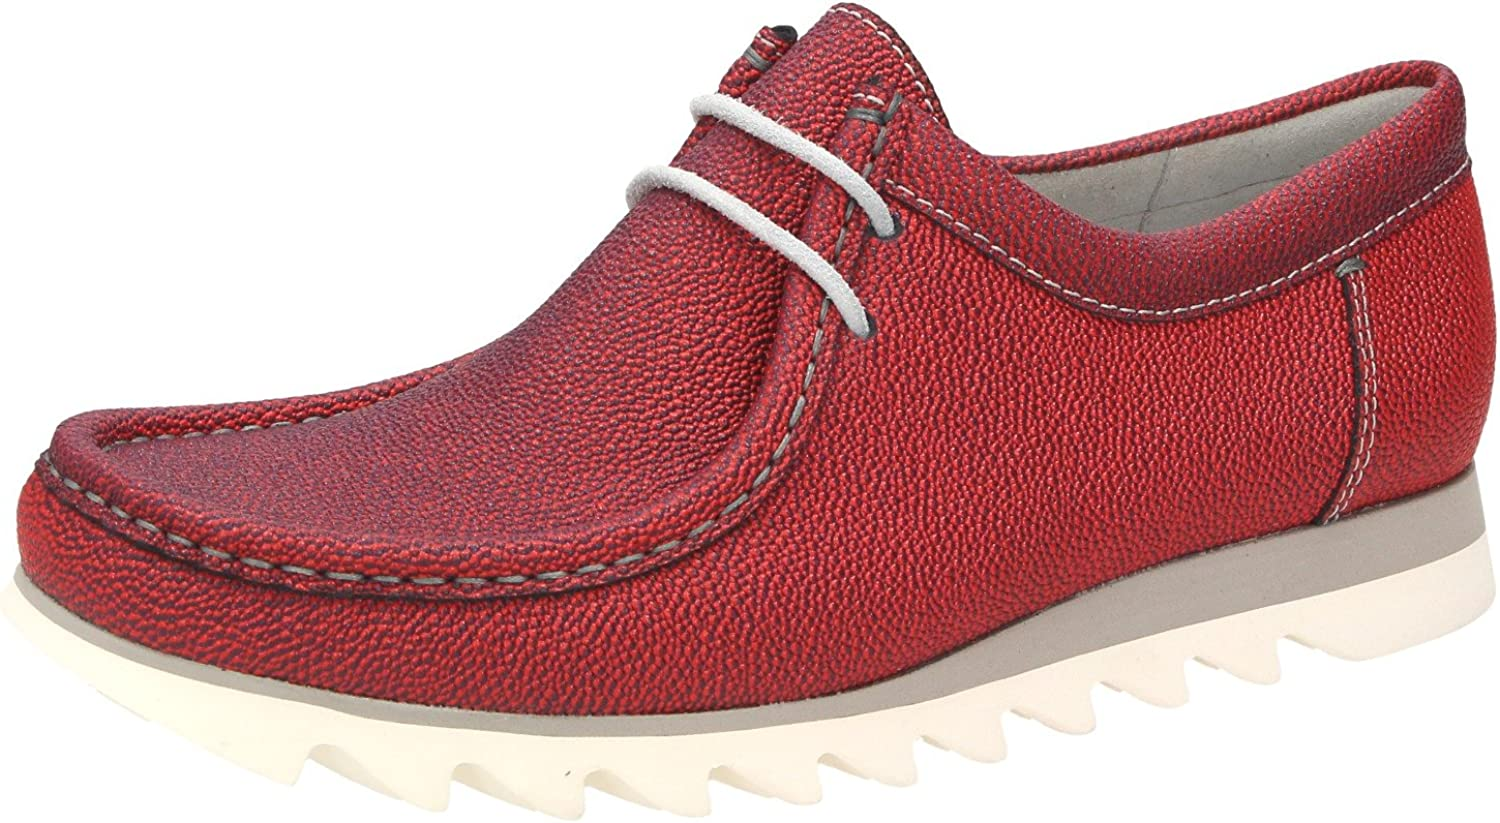 Sioux Men's Lace-Up Flats red red